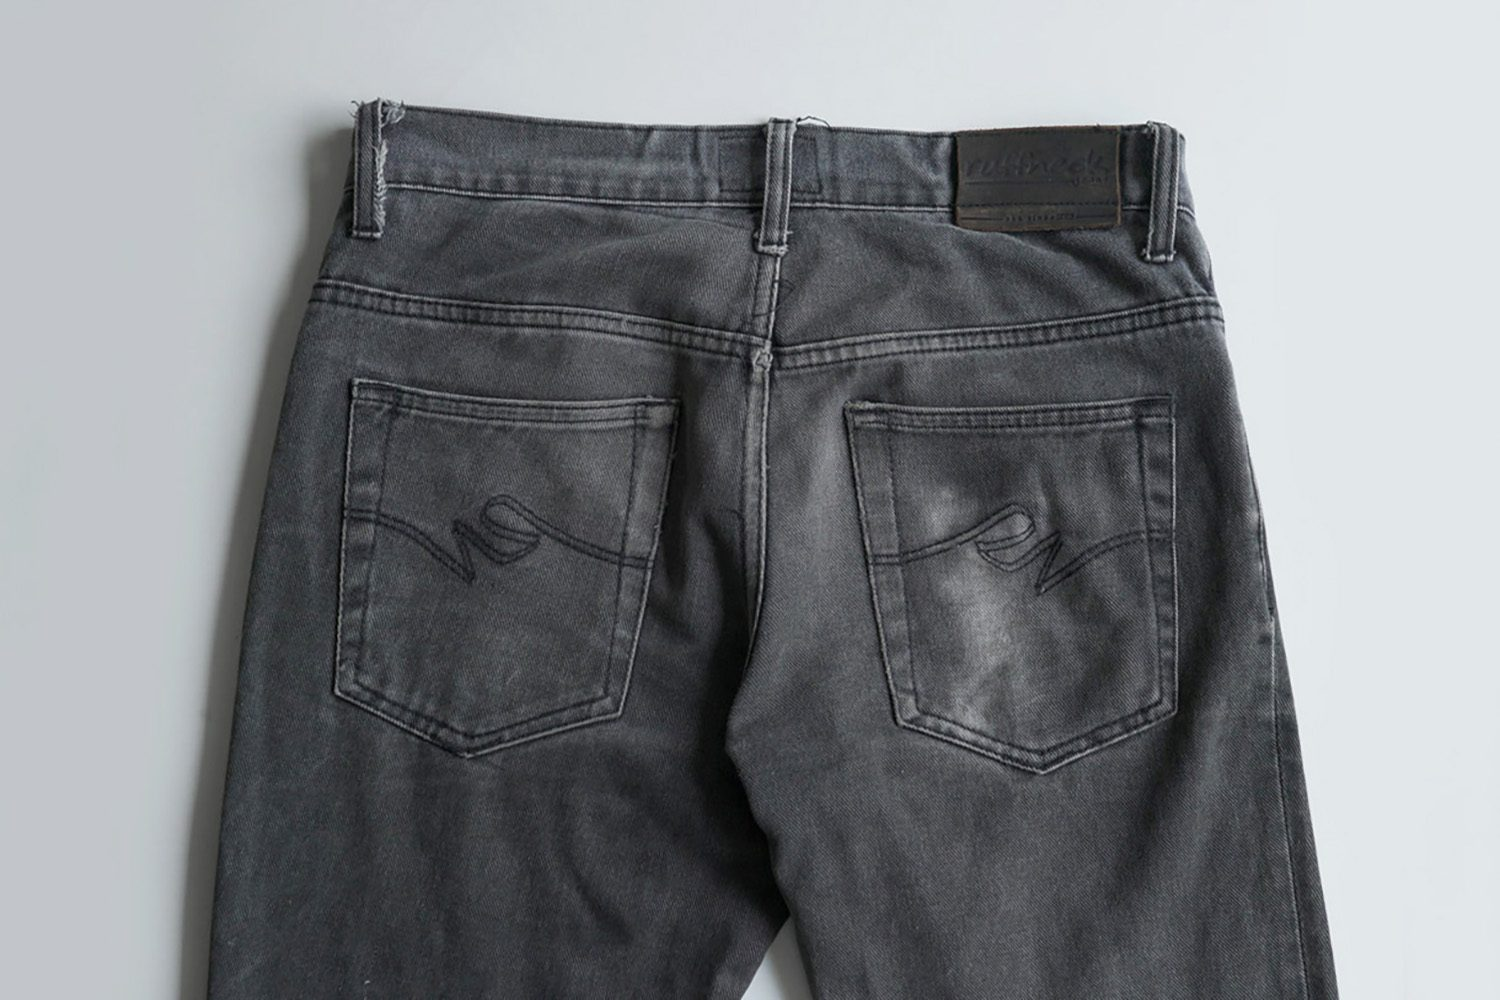 Neighbourlist_Indonesian_Jeans_pioneer_Ruffneck2